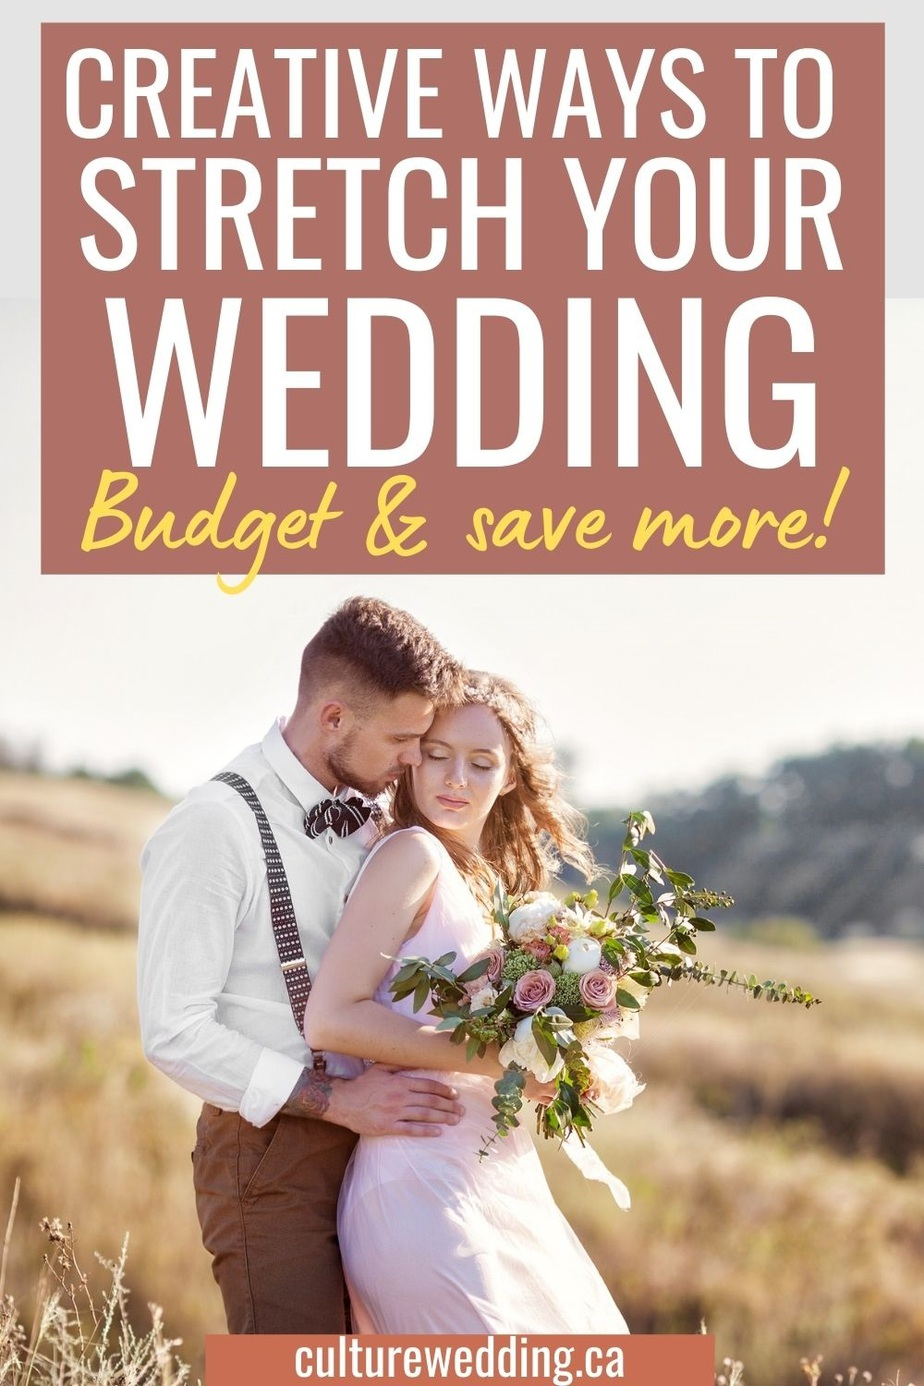 Cheap wedding ideas on a budget. Cheap Wedding Ideas on a Small Budget Looking for cheap wedding ideas on a small budget? These tips on how to plan your ideal wedding while still having fun will help you keep costs low.